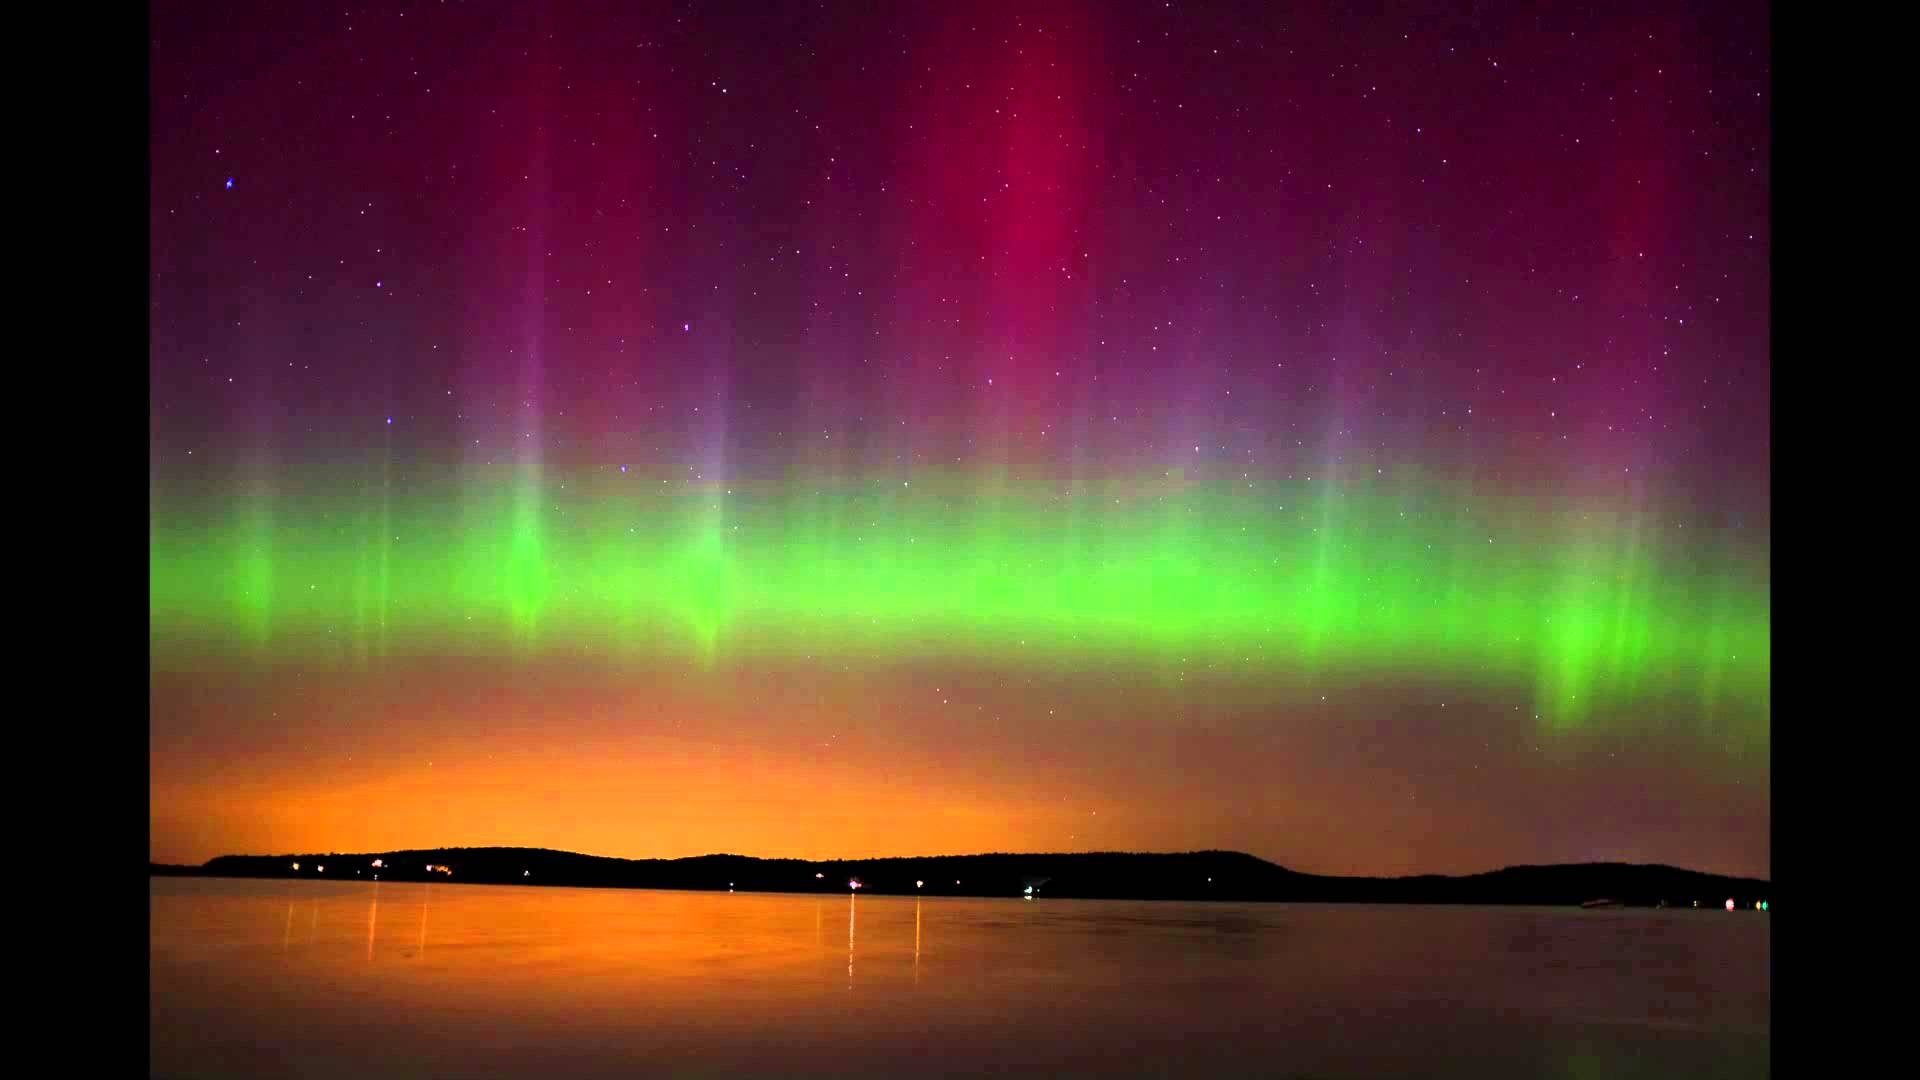 Northern Lights (Aurora Borealis) in Malletts Bay, Vermont on 10/8/2013